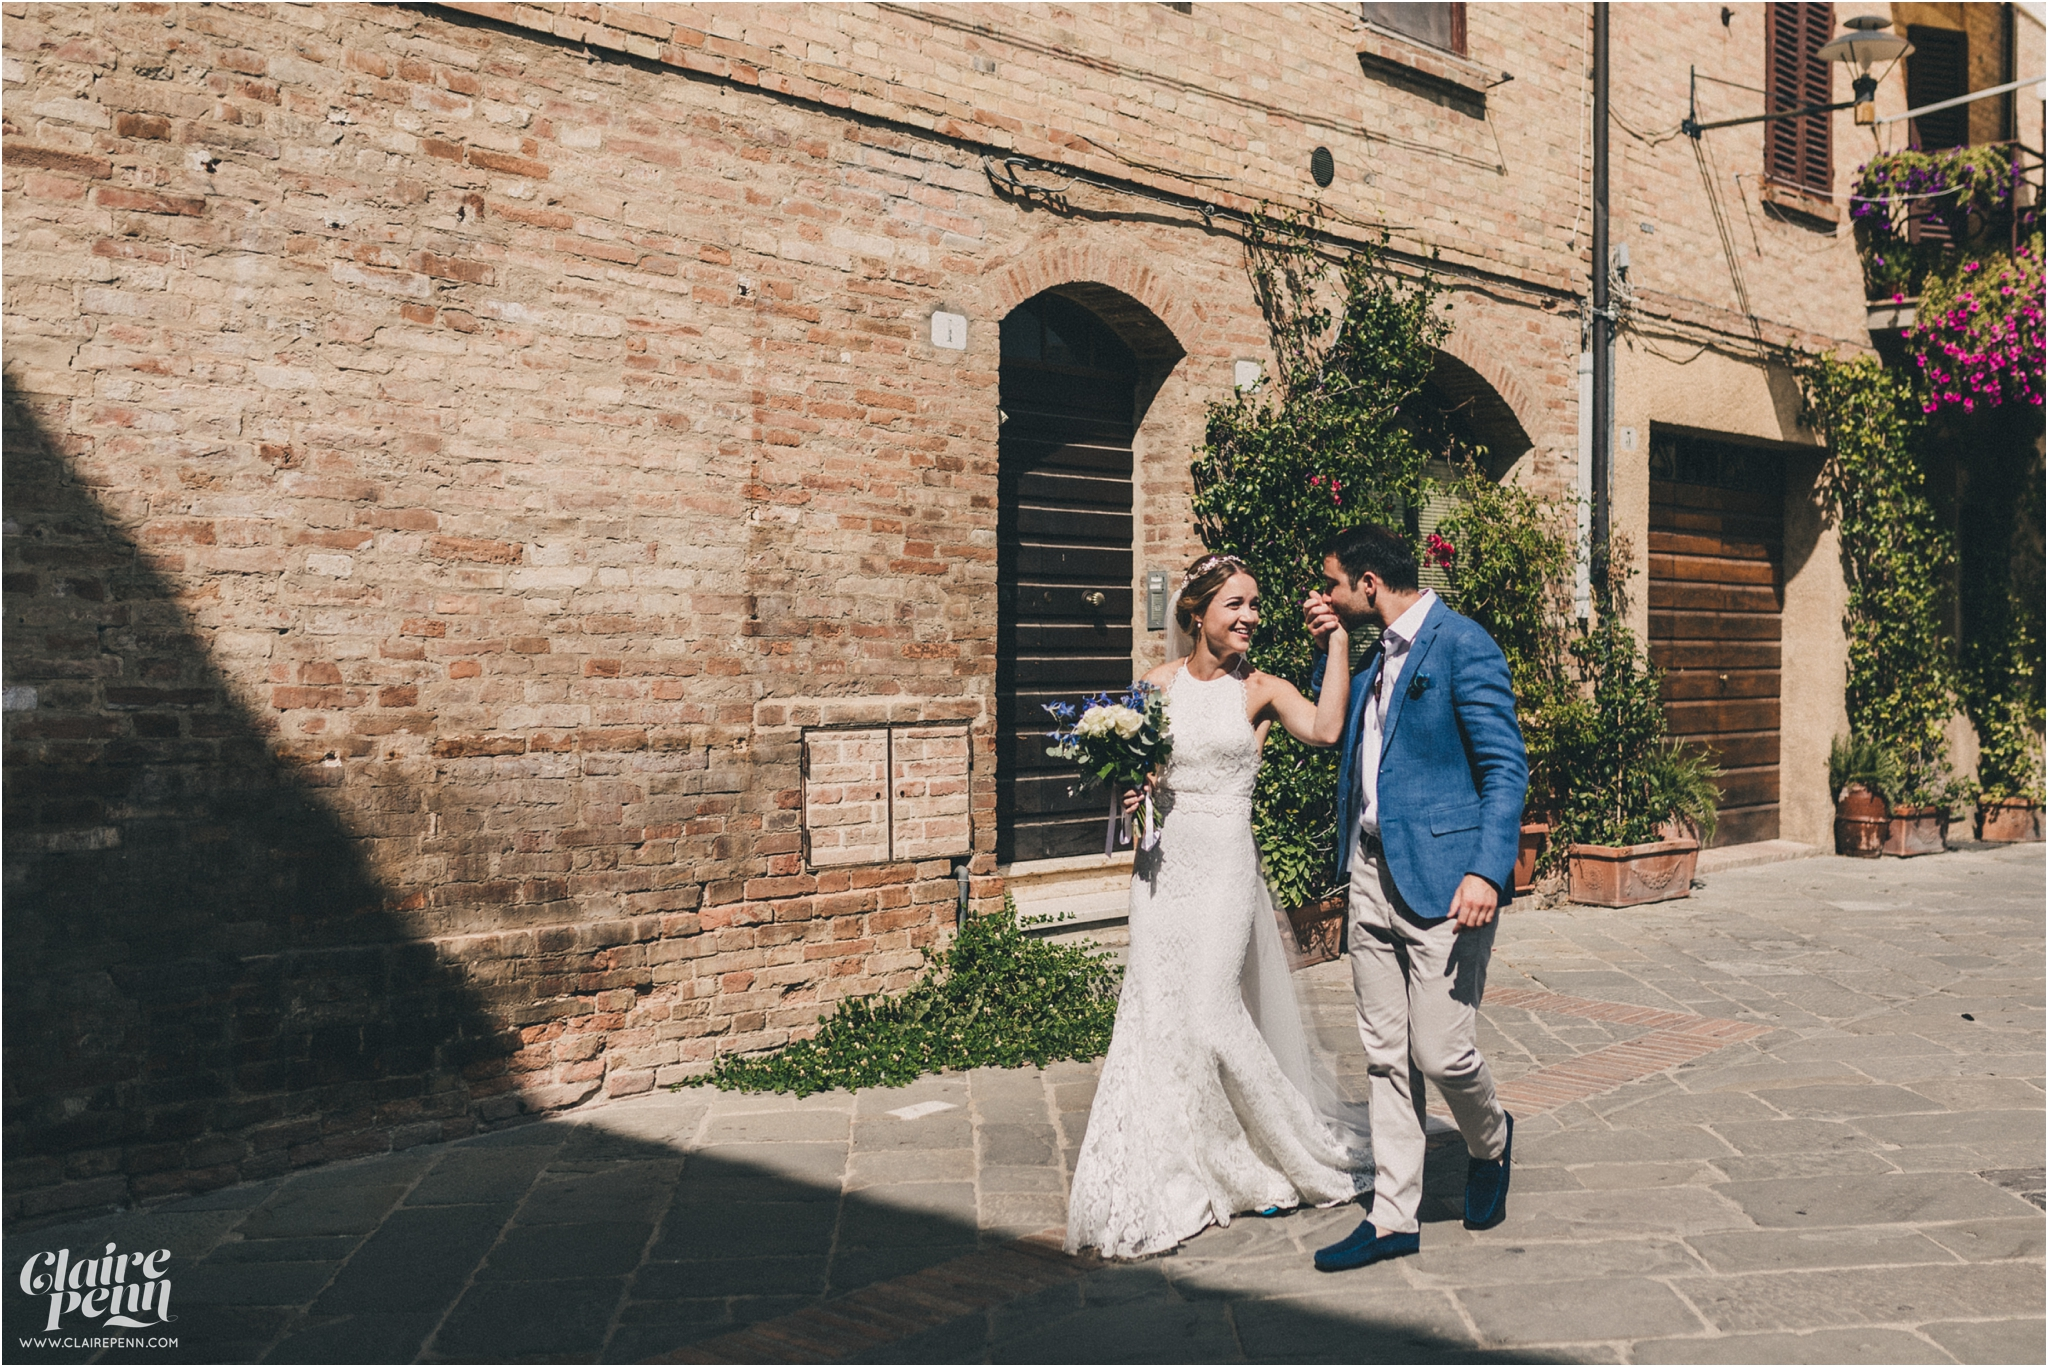 Dreamy Tuscan destination wedding Italy 00025.jpg